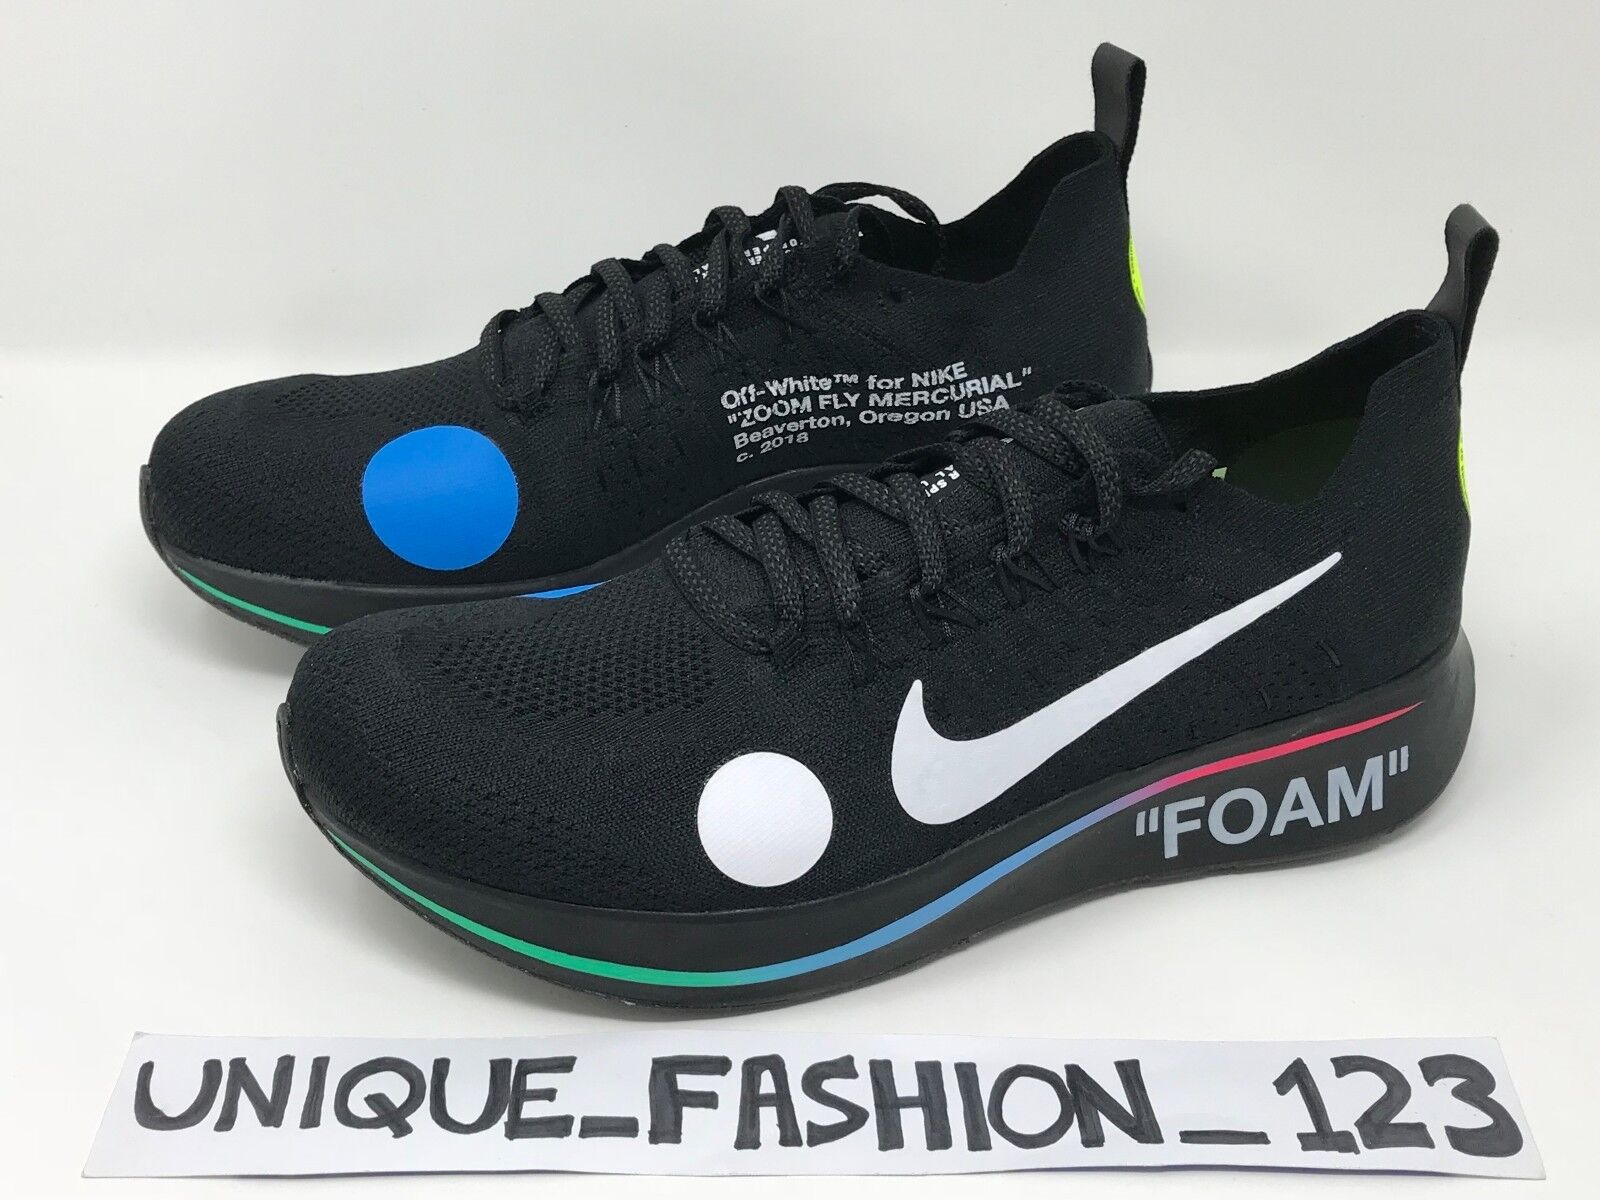 NIKE ZOOM FLY MERCURIAL X OFF WHITE BLACK FLYKNIT FOOTBALL